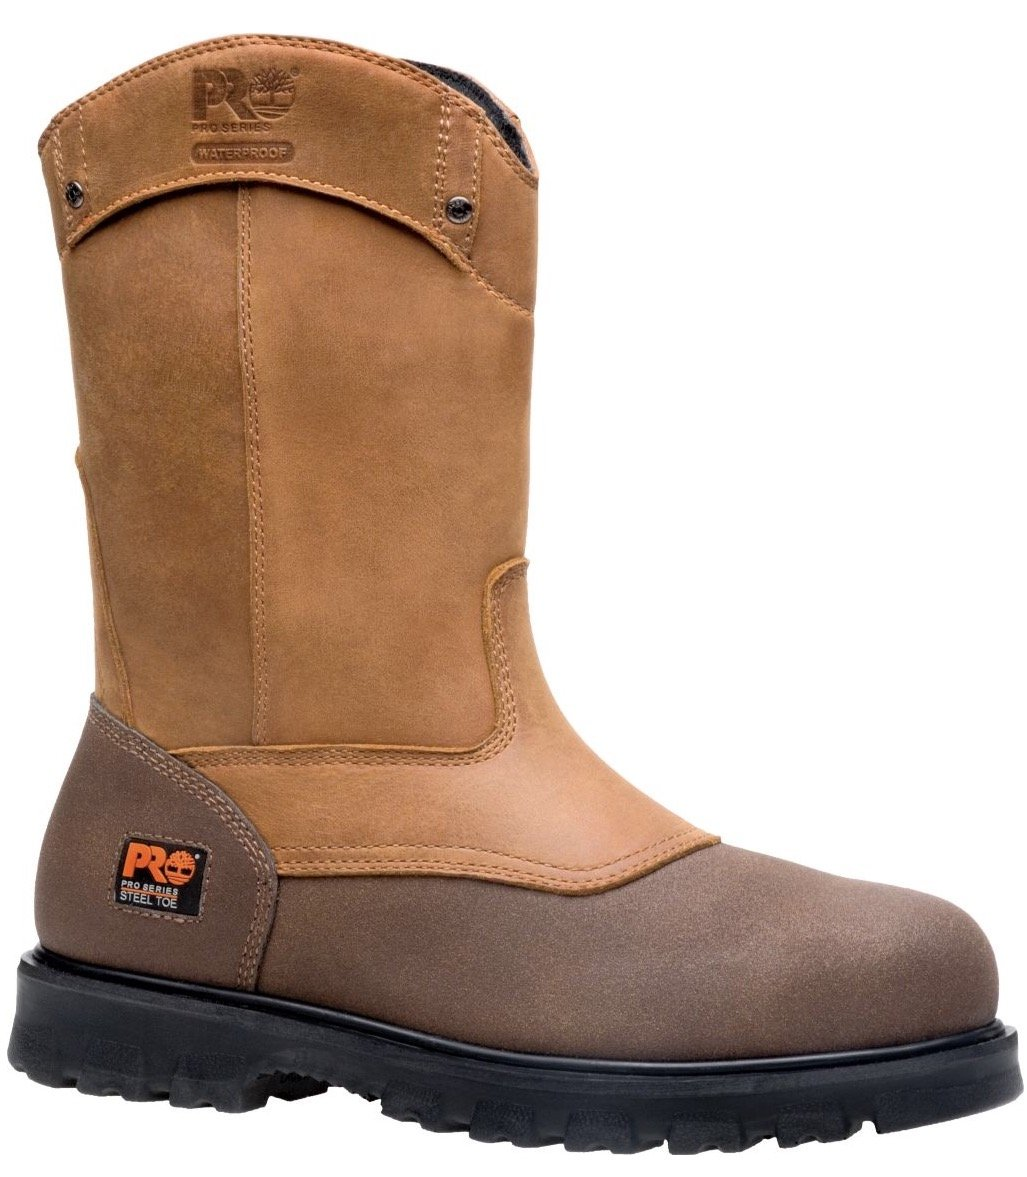 Timberland SIZE 11 PRO Men's Rigmaster Wellington Wide Steel Toe Work Boots by Stella and Dot